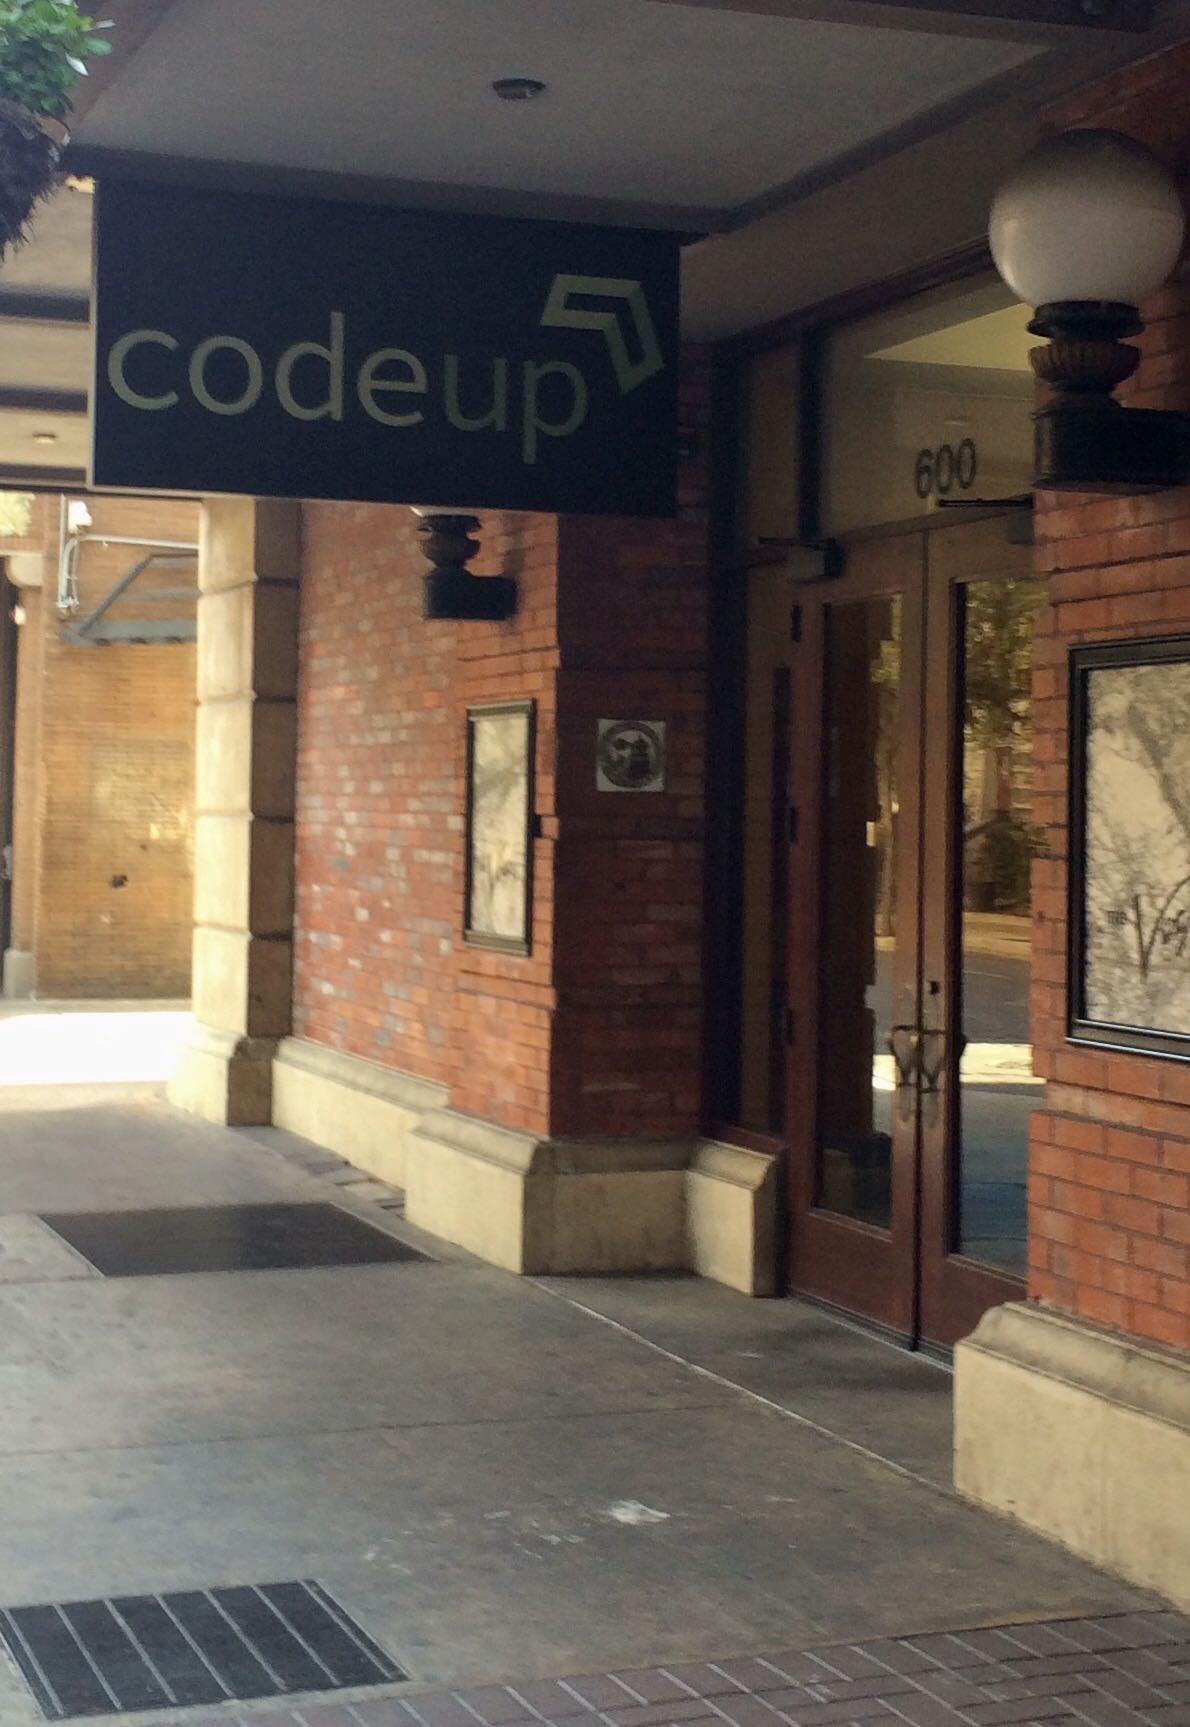 Codeup Entrance